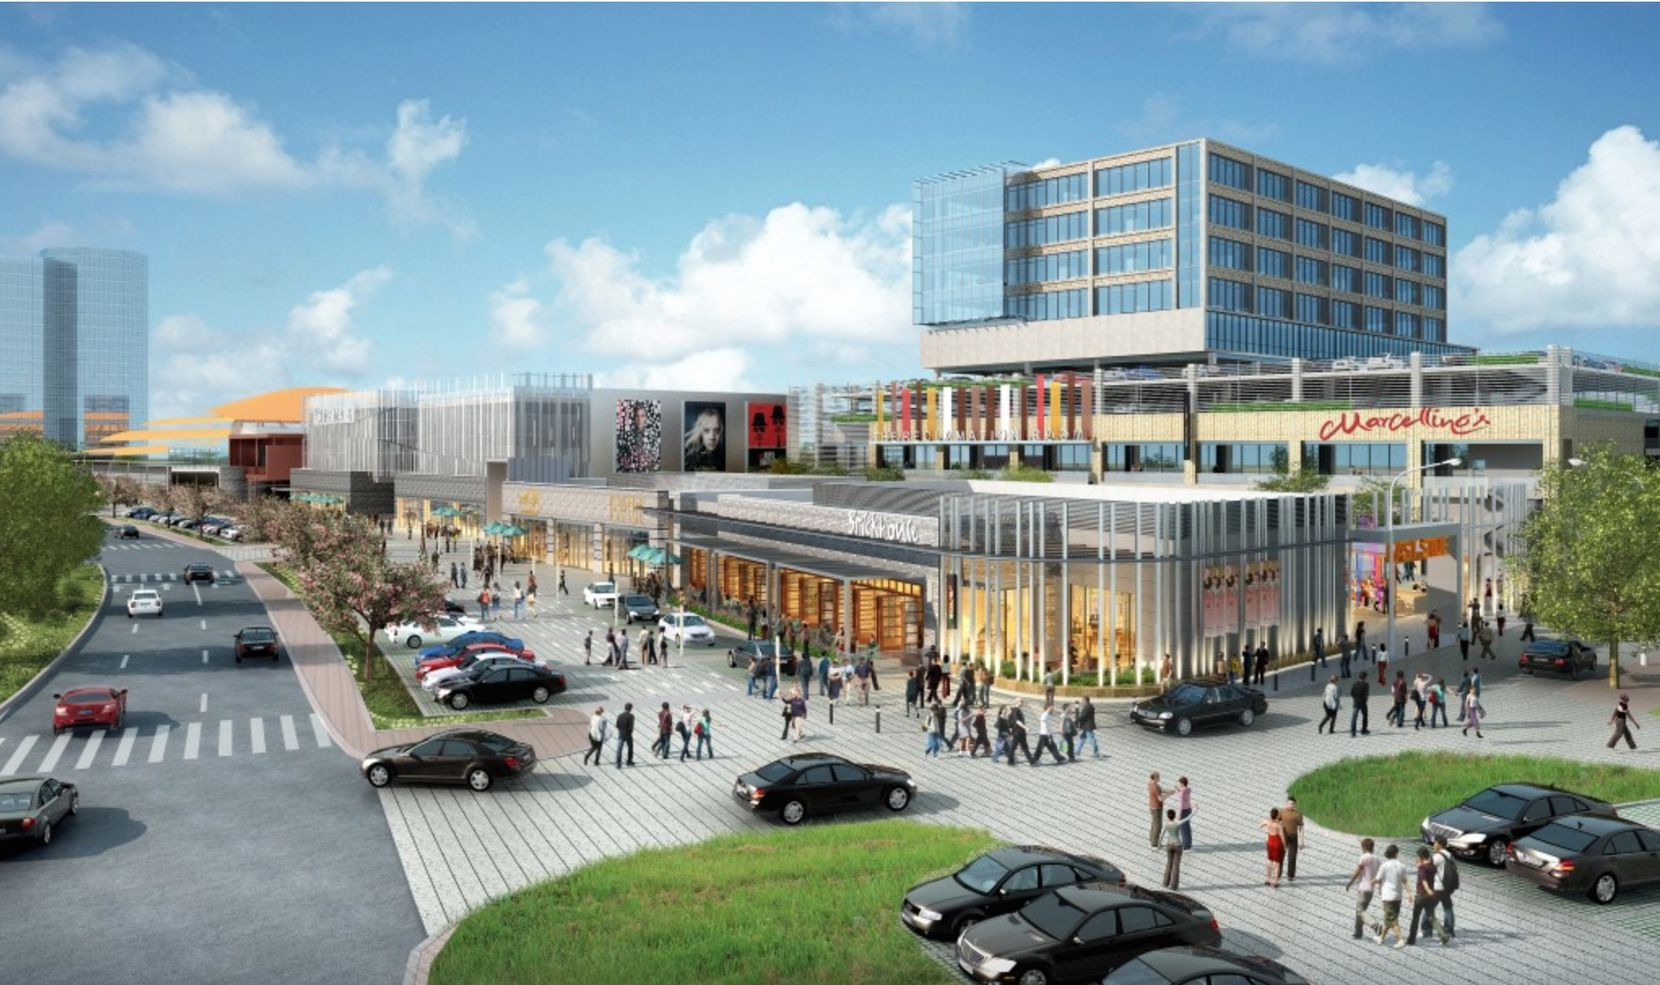 The Music Factory will include office, retail, restaurants and entertainment venues.